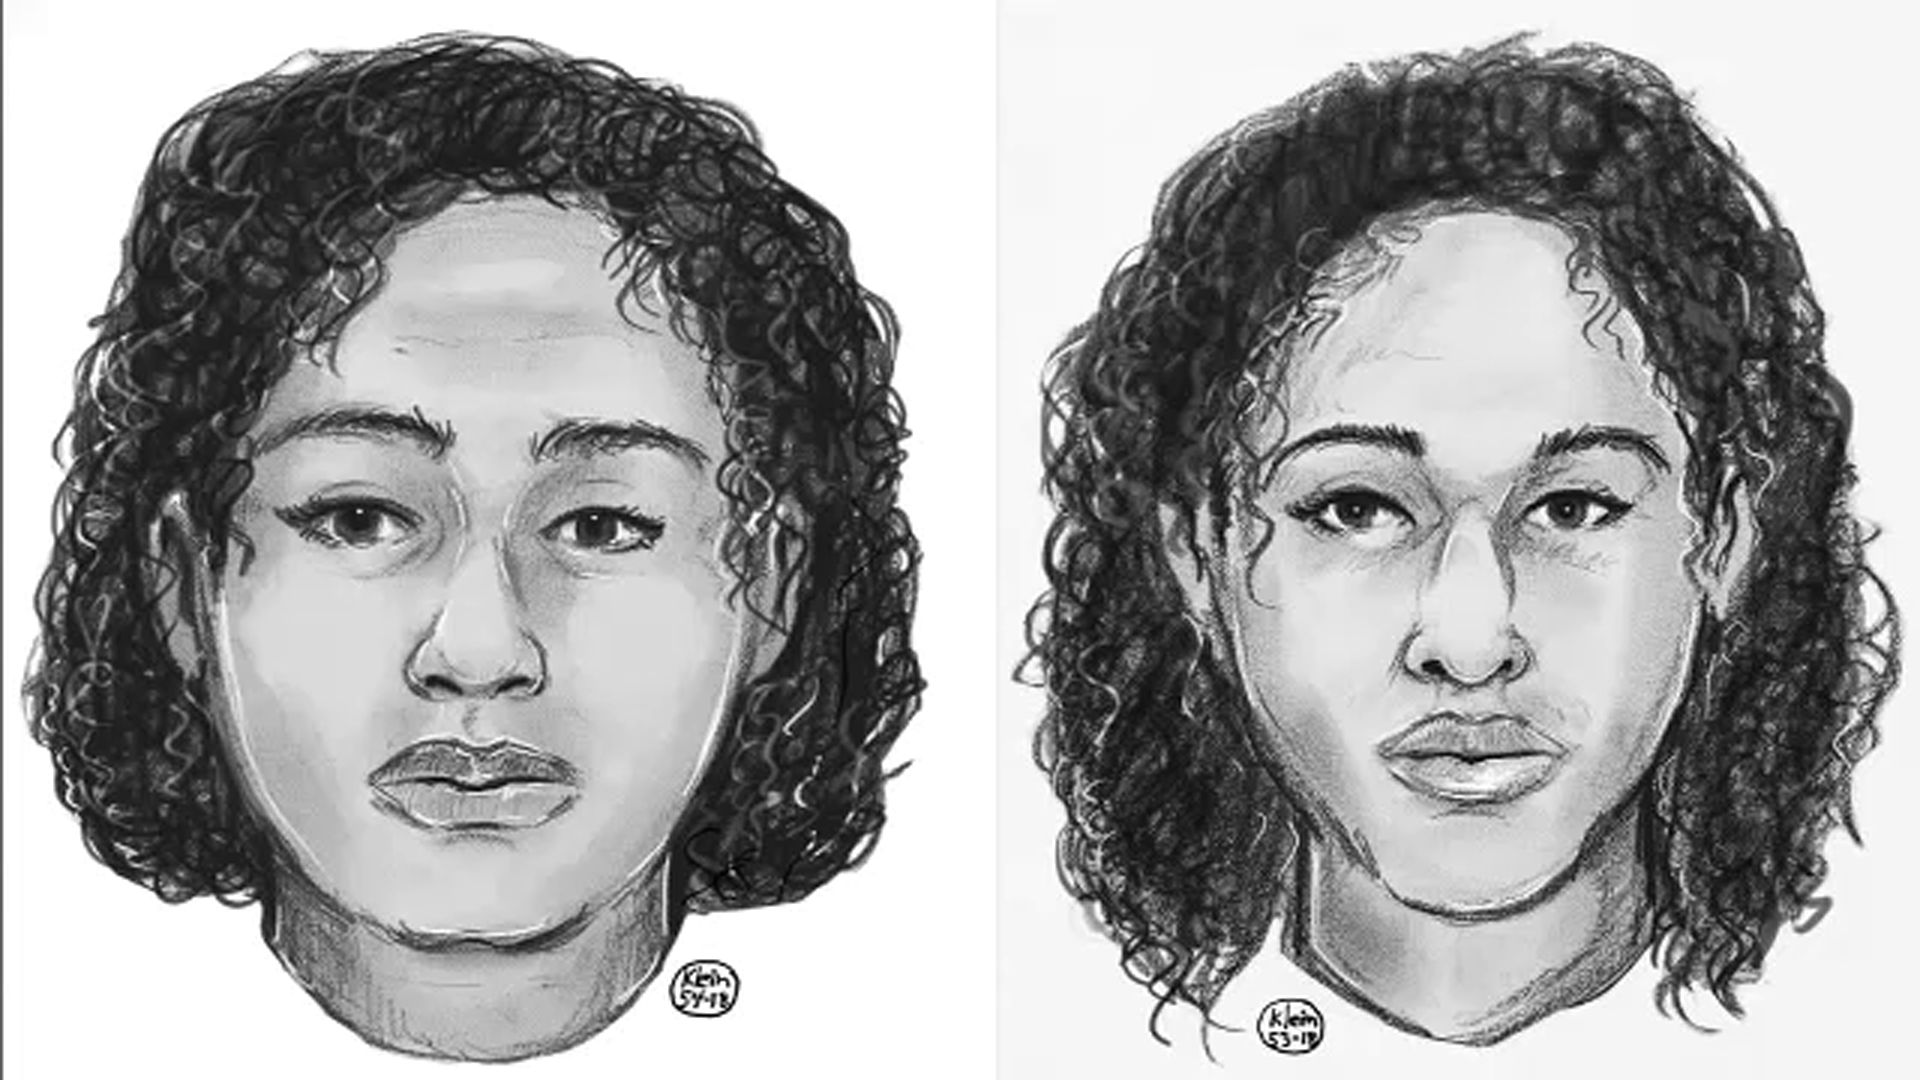 Police have identified the two women whose duct-taped bodies were found washed up from the Hudson River as sisters from Virginia.